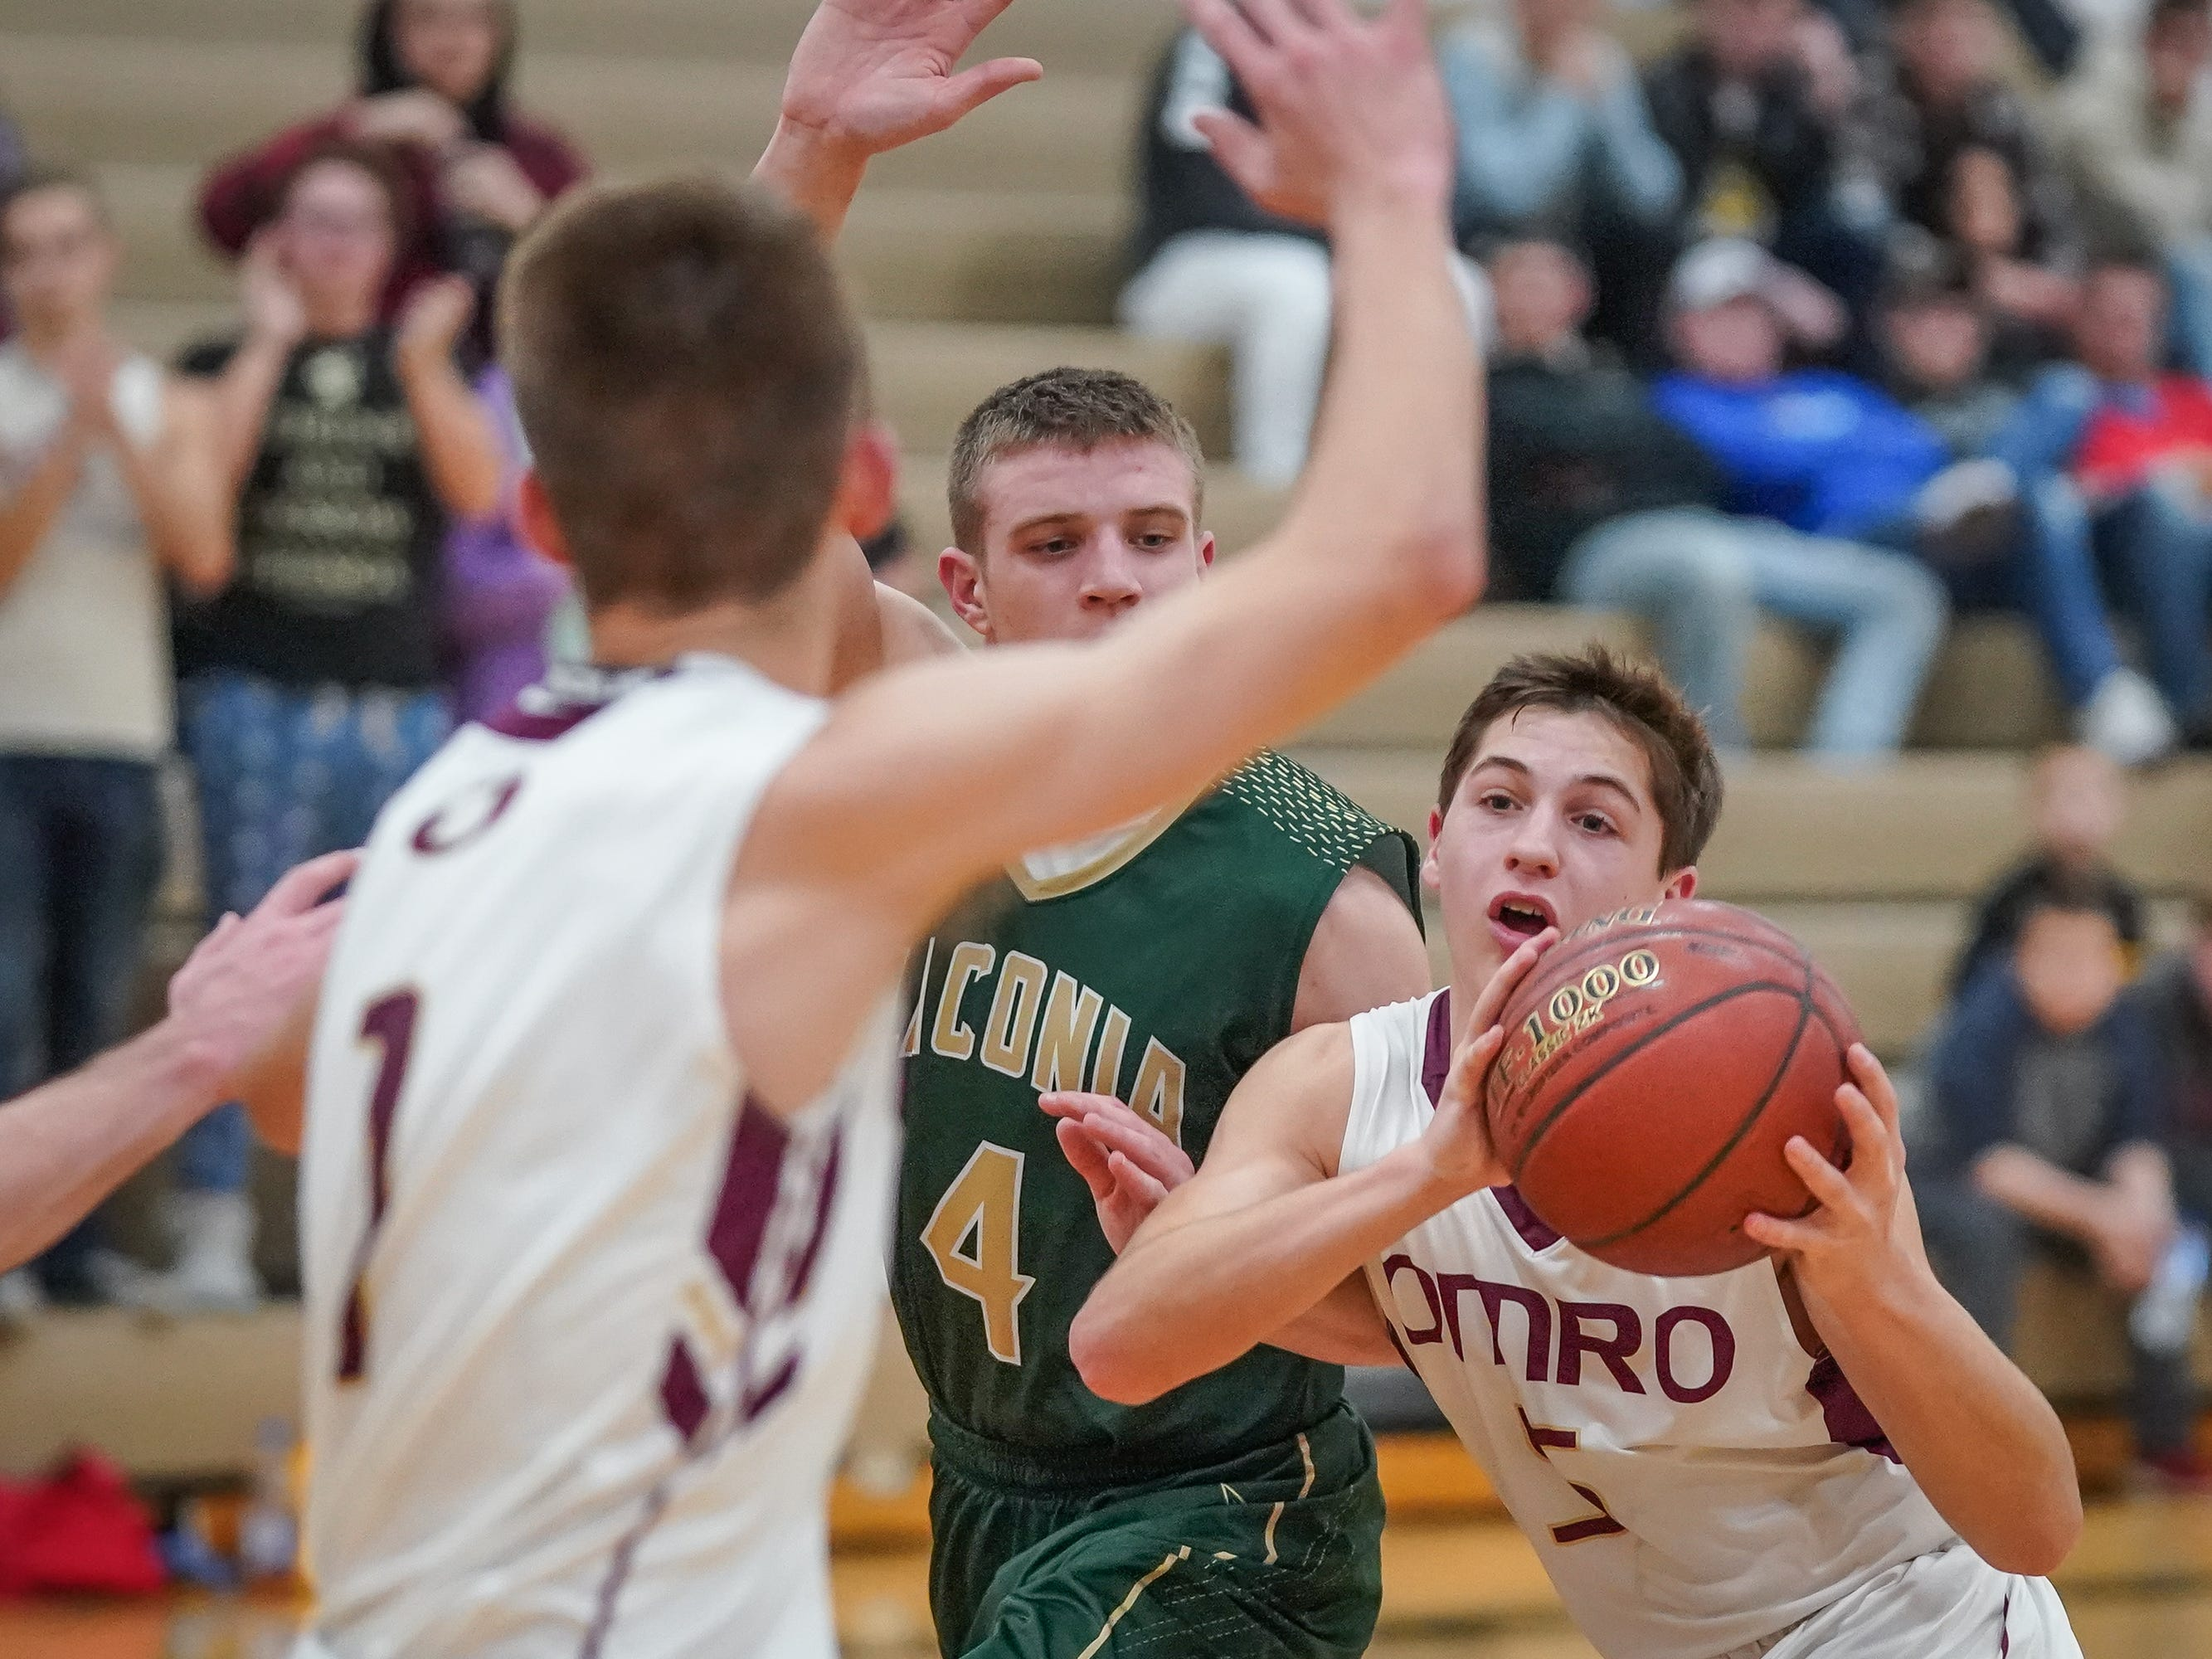 Cody Schoeni (5) of Omro gets ready to pass to Trevor Molitor (1). The Omro Foxes hosted the Laconia Spartans in a Flyway Conference basketball game Friday evening, January 11, 2019.